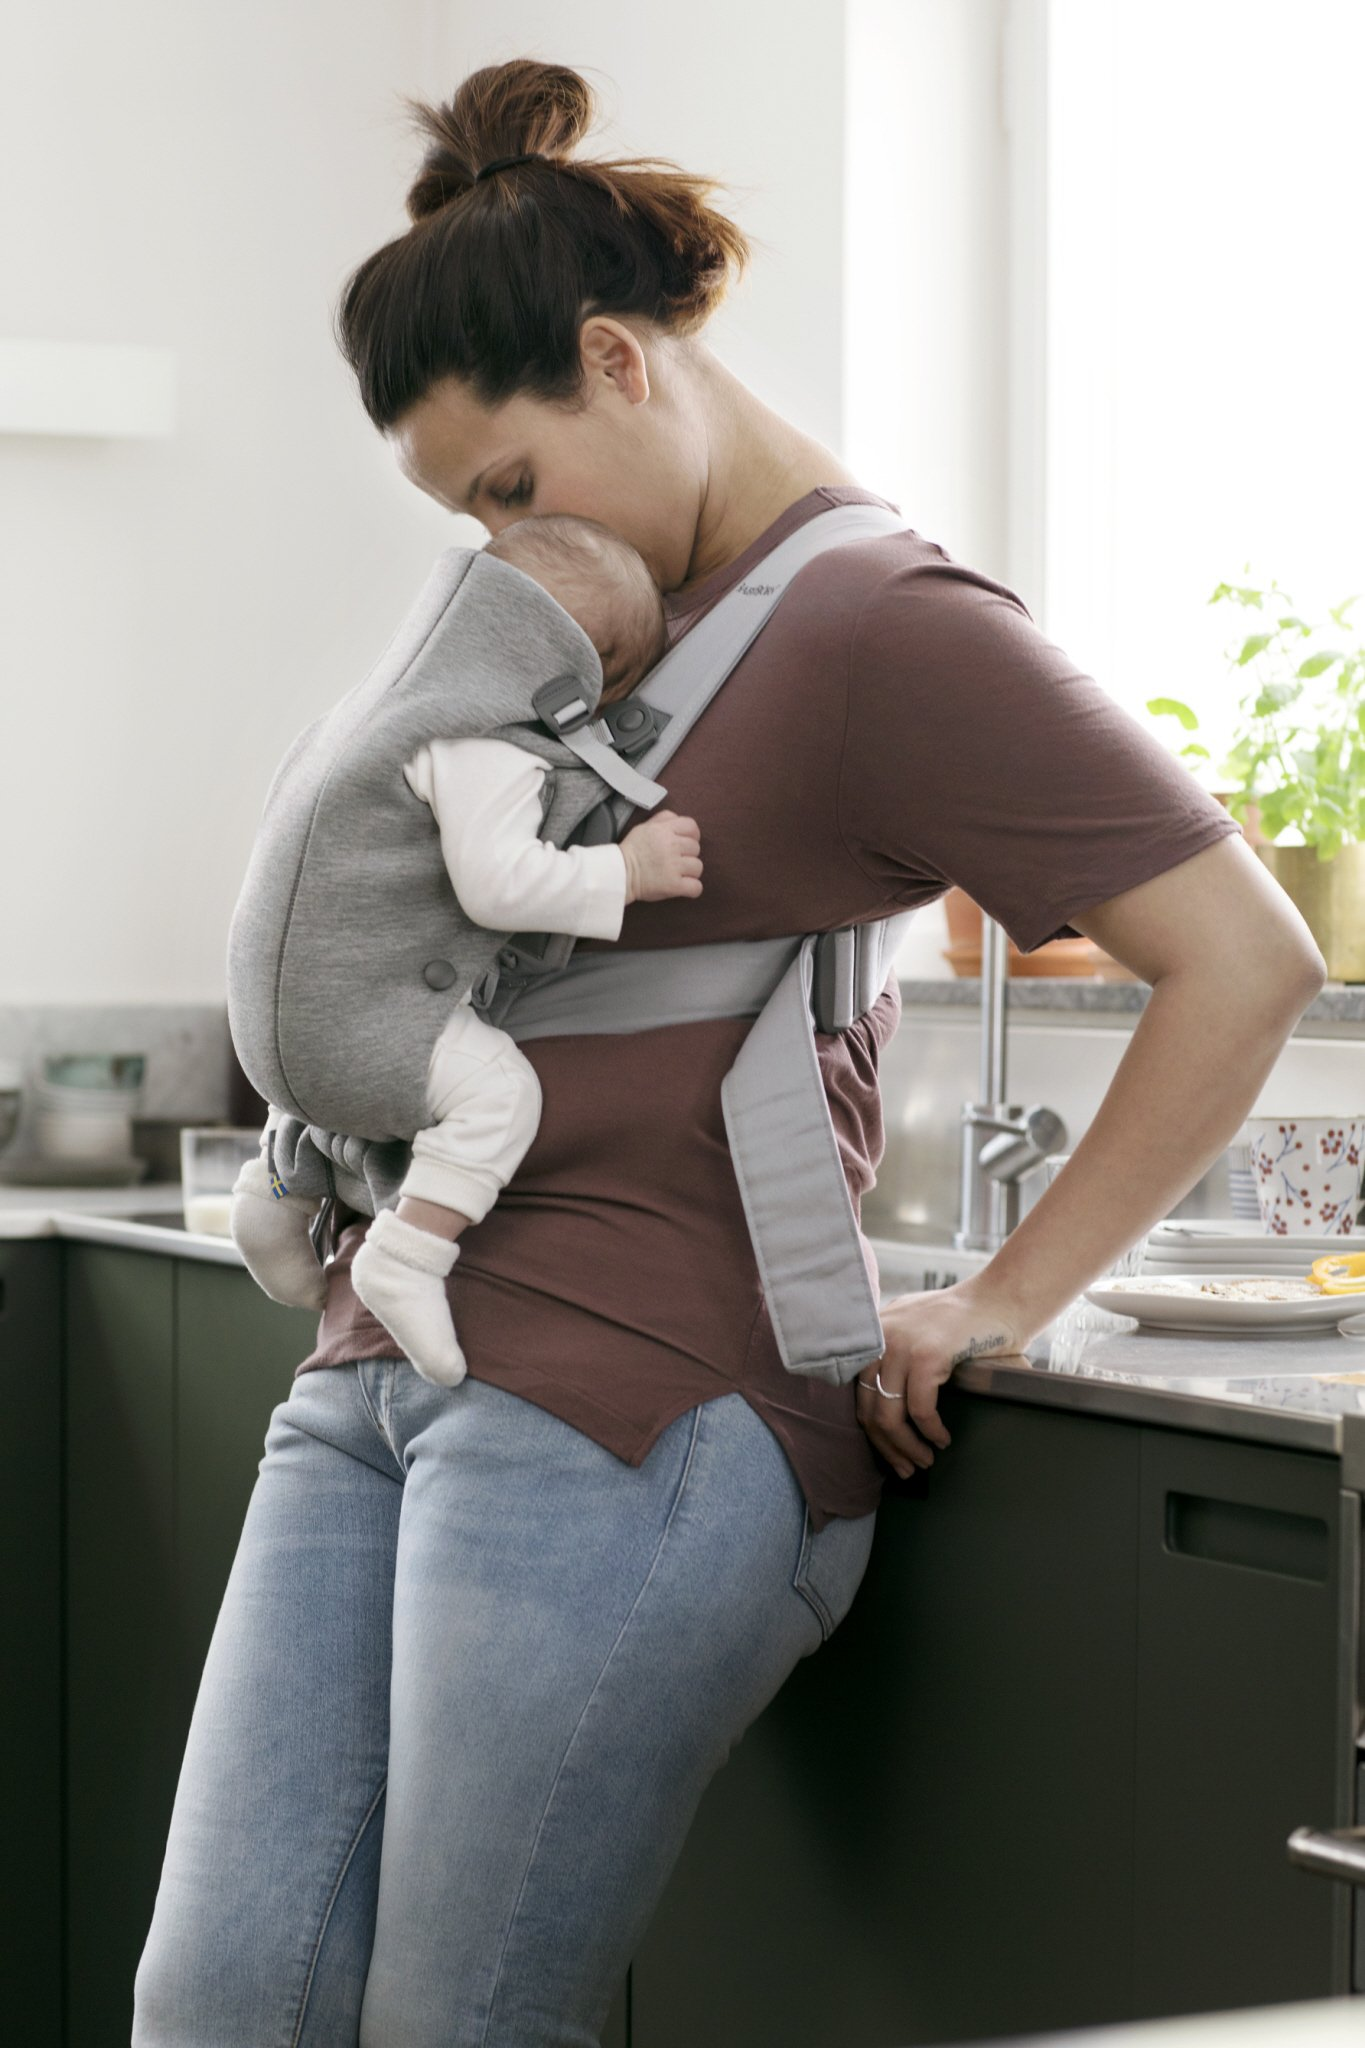 BABYBJORN Baby Carrier Mini in 3D Jersey, Light Grey by BabyBjörn (Image #3)